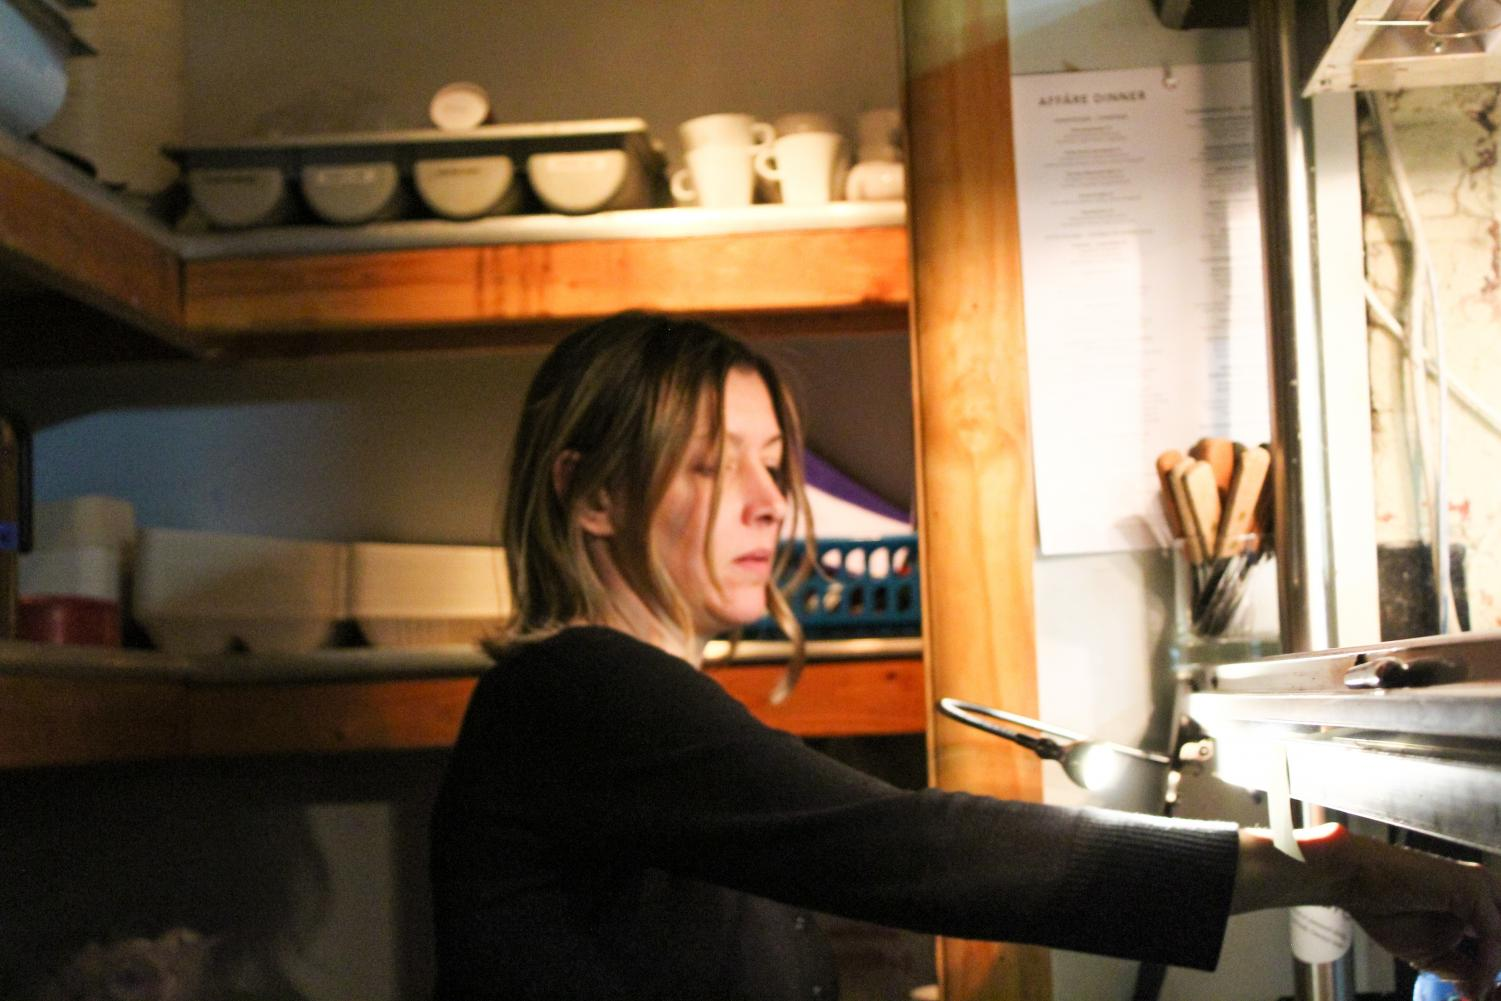 Katrin Hueser, co-owner of German restaurant Affäre, reads order tickets under the window on Nov. 11. Heuser co-owns Affäre with her husband, Martin Heuser. photo by Beatrice Curry